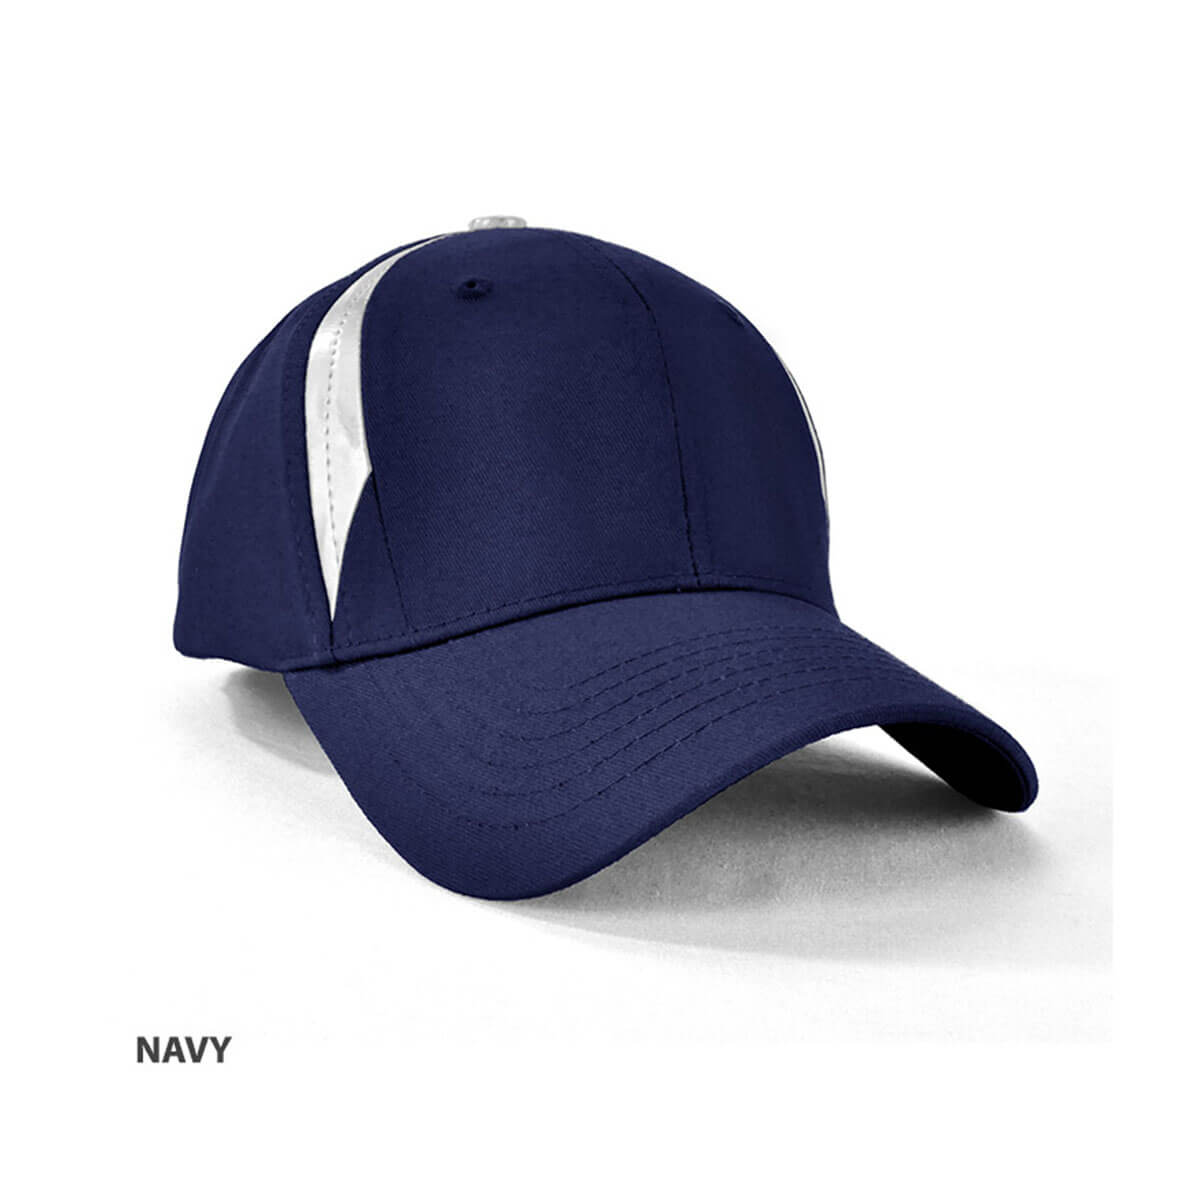 Bling Cap-Navy